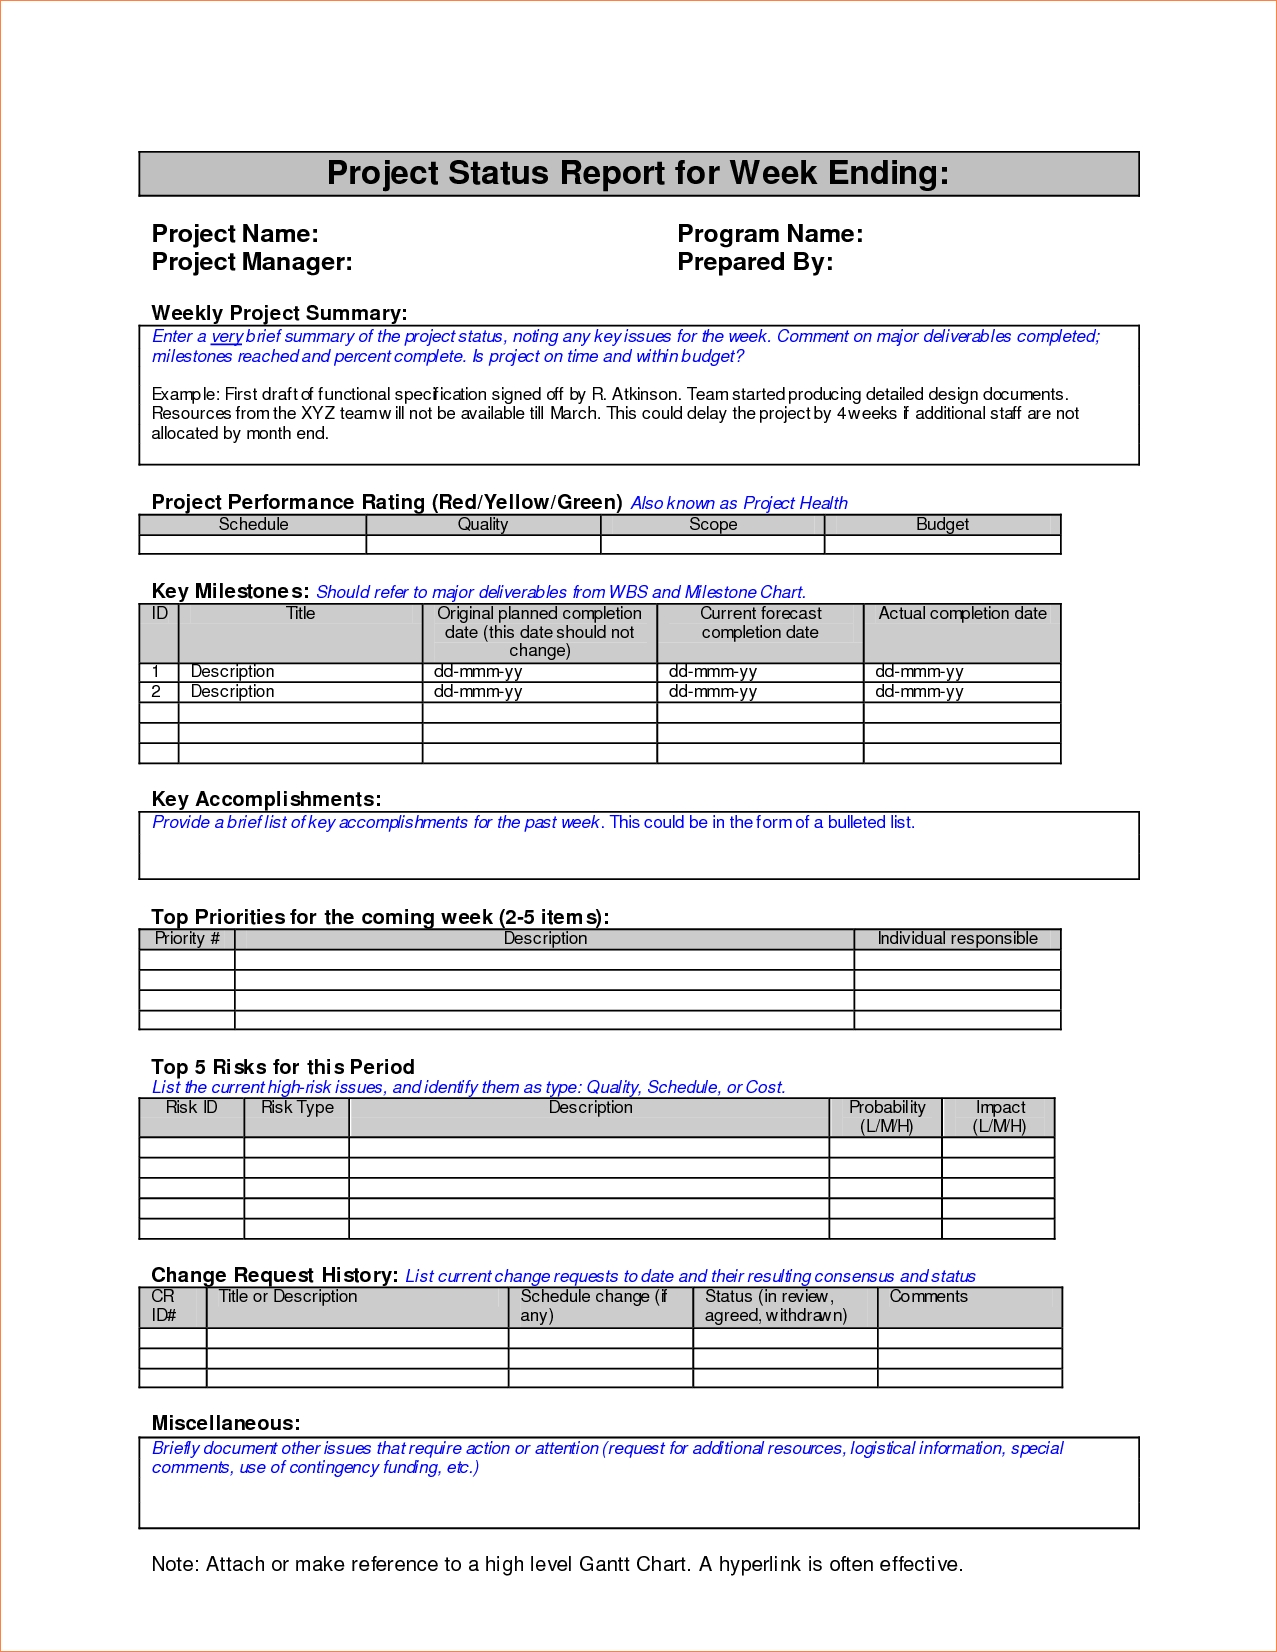 timesheet and invoice software contractor timesheet invoice timesheet invoice invoic timesheet 1277 X 1652